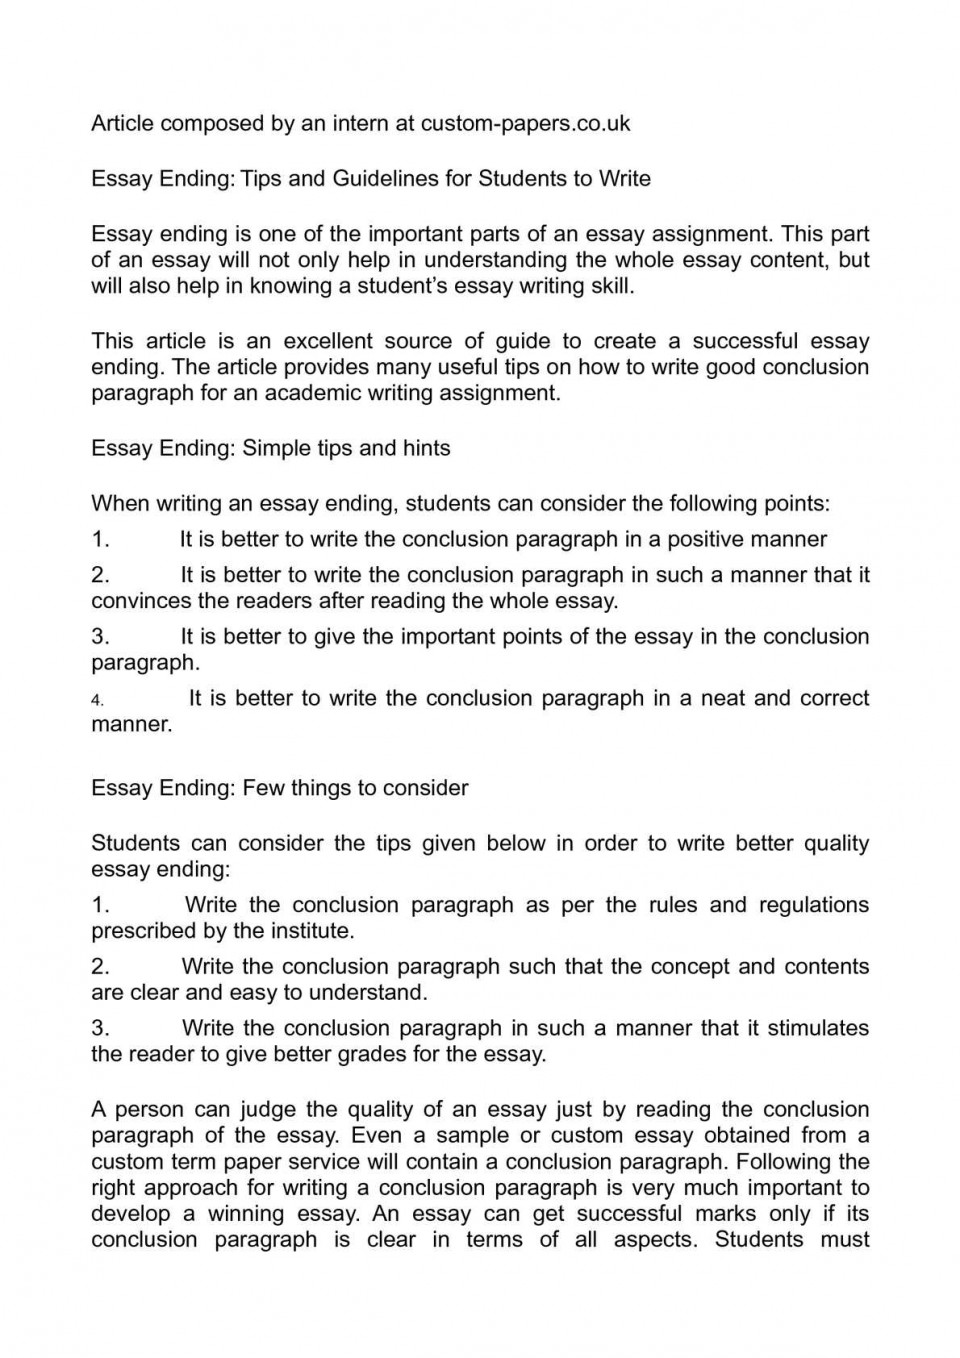 001 Parts Of An Essay Ending Tips And Guidelines For Students To Write Writing Persuasi Pdf Three Persuasive Stupendous Quizlet Worksheet 960